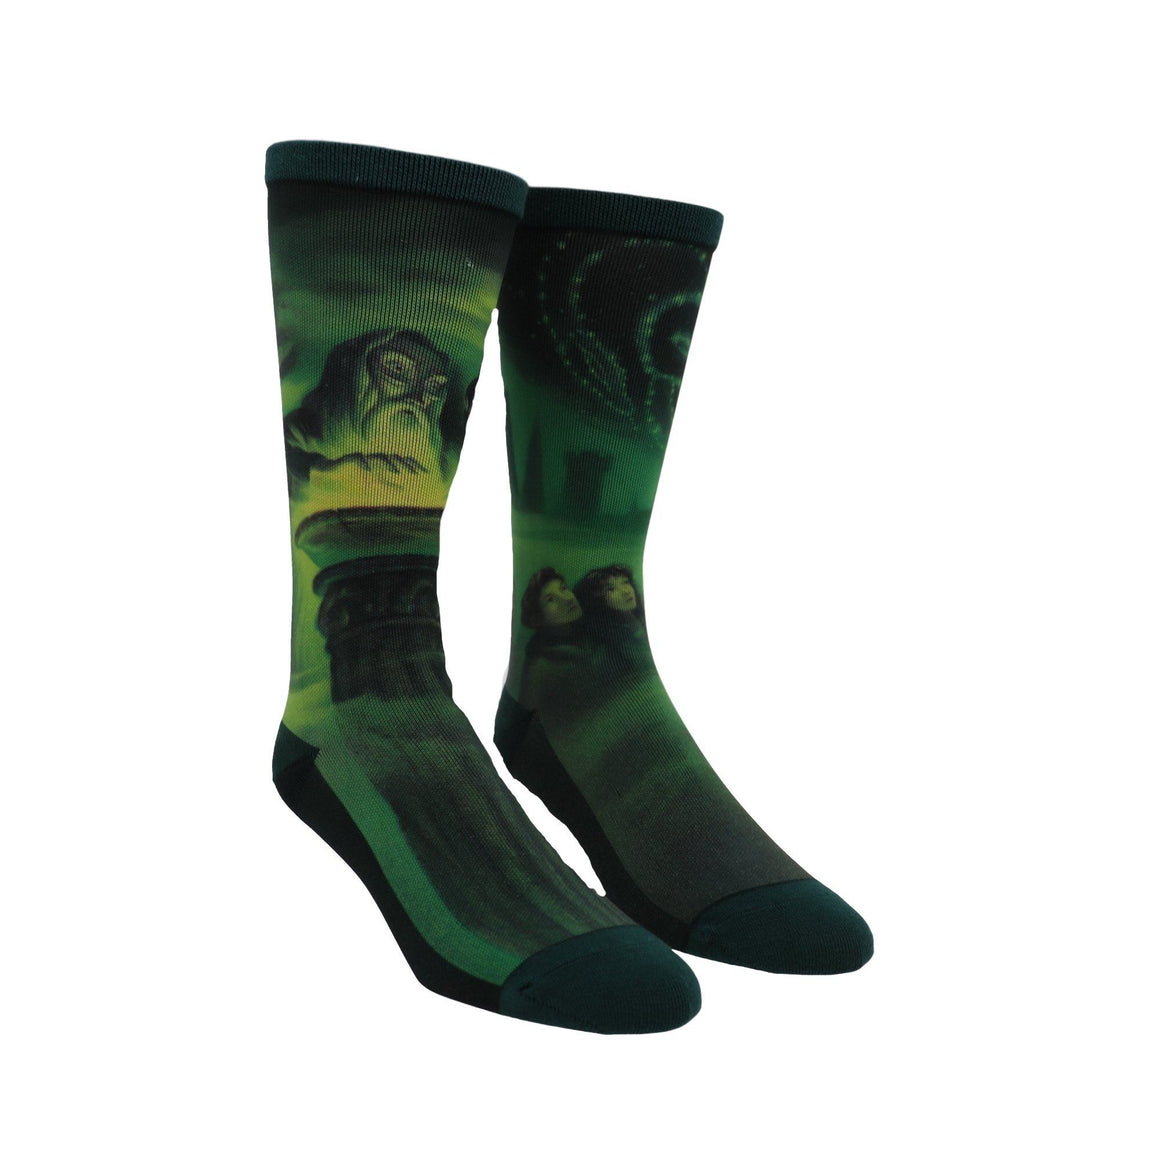 Harry Potter and the Half Blood Prince Socks - Large by Out Of Print - The Sock Spot